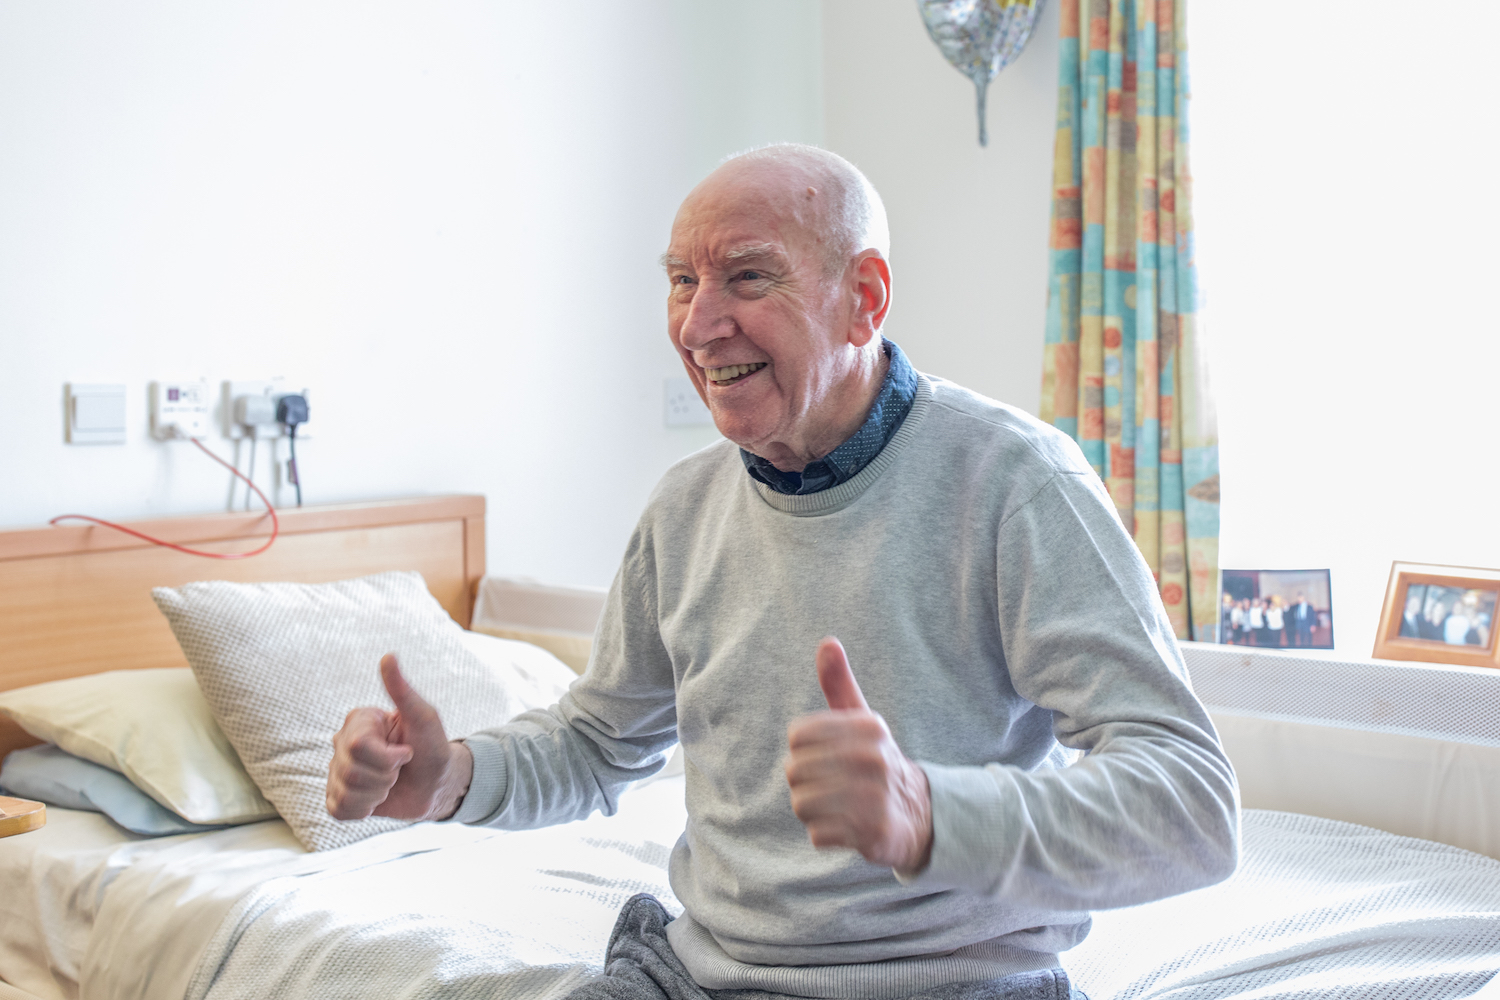 resident at Moorland Gardens Care Home, Luton